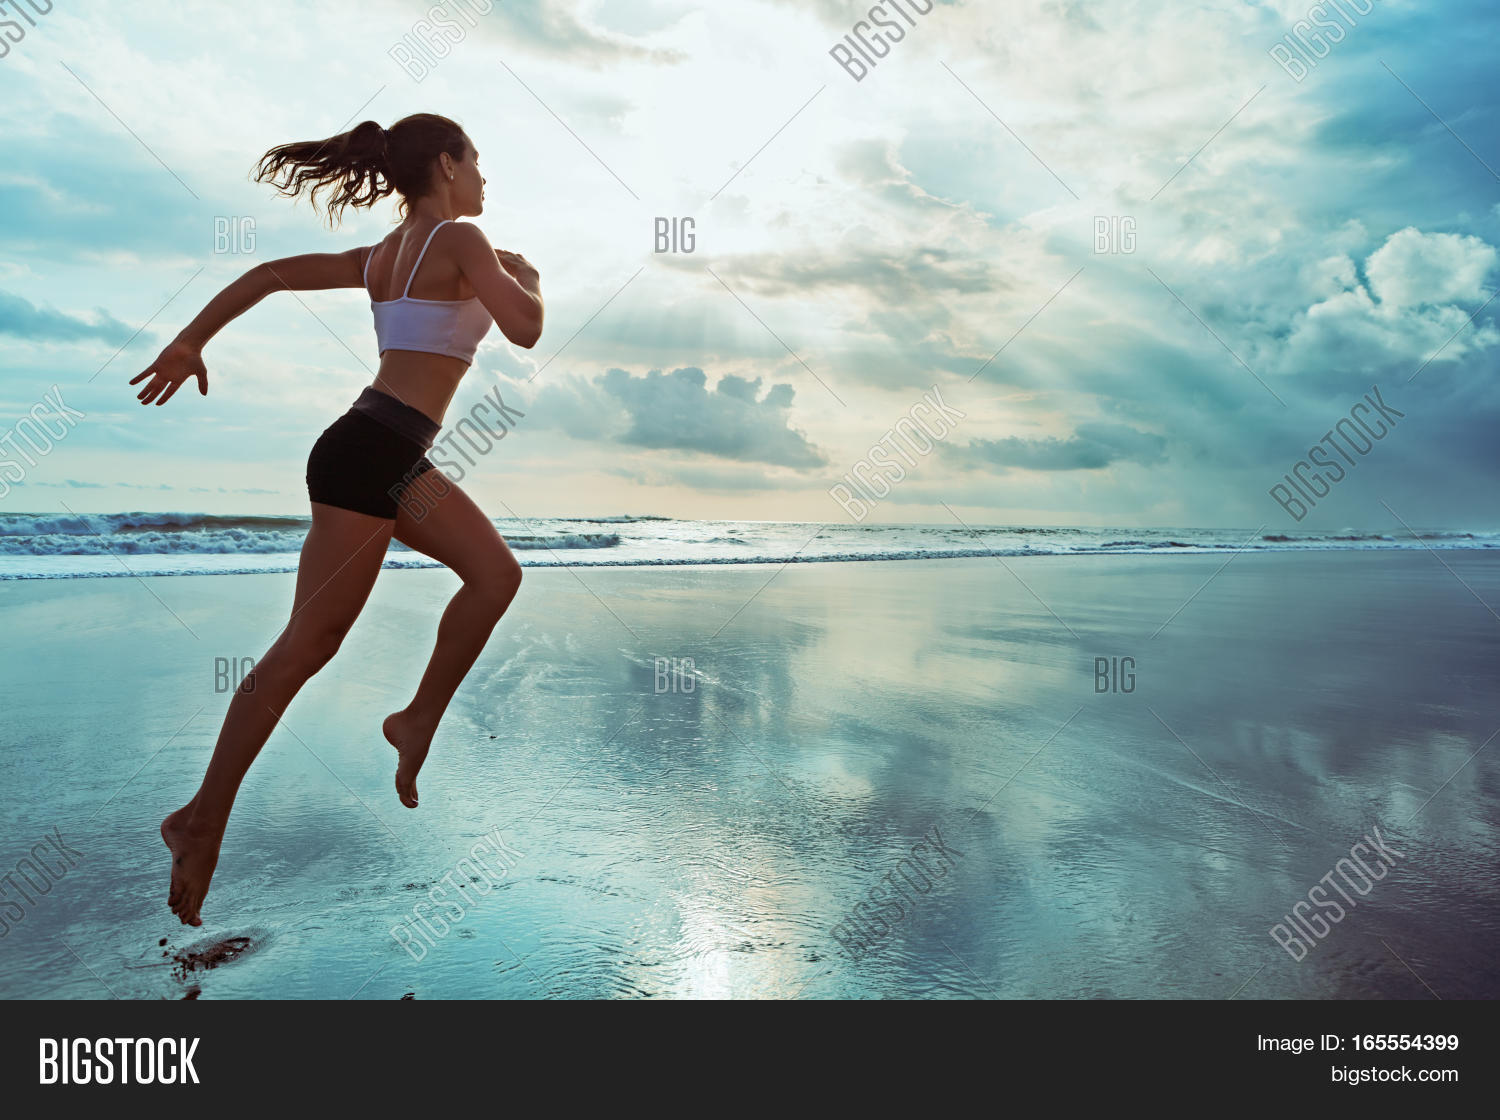 Active Sporty Woman Image Photo Trial Bigstock 1500x1120